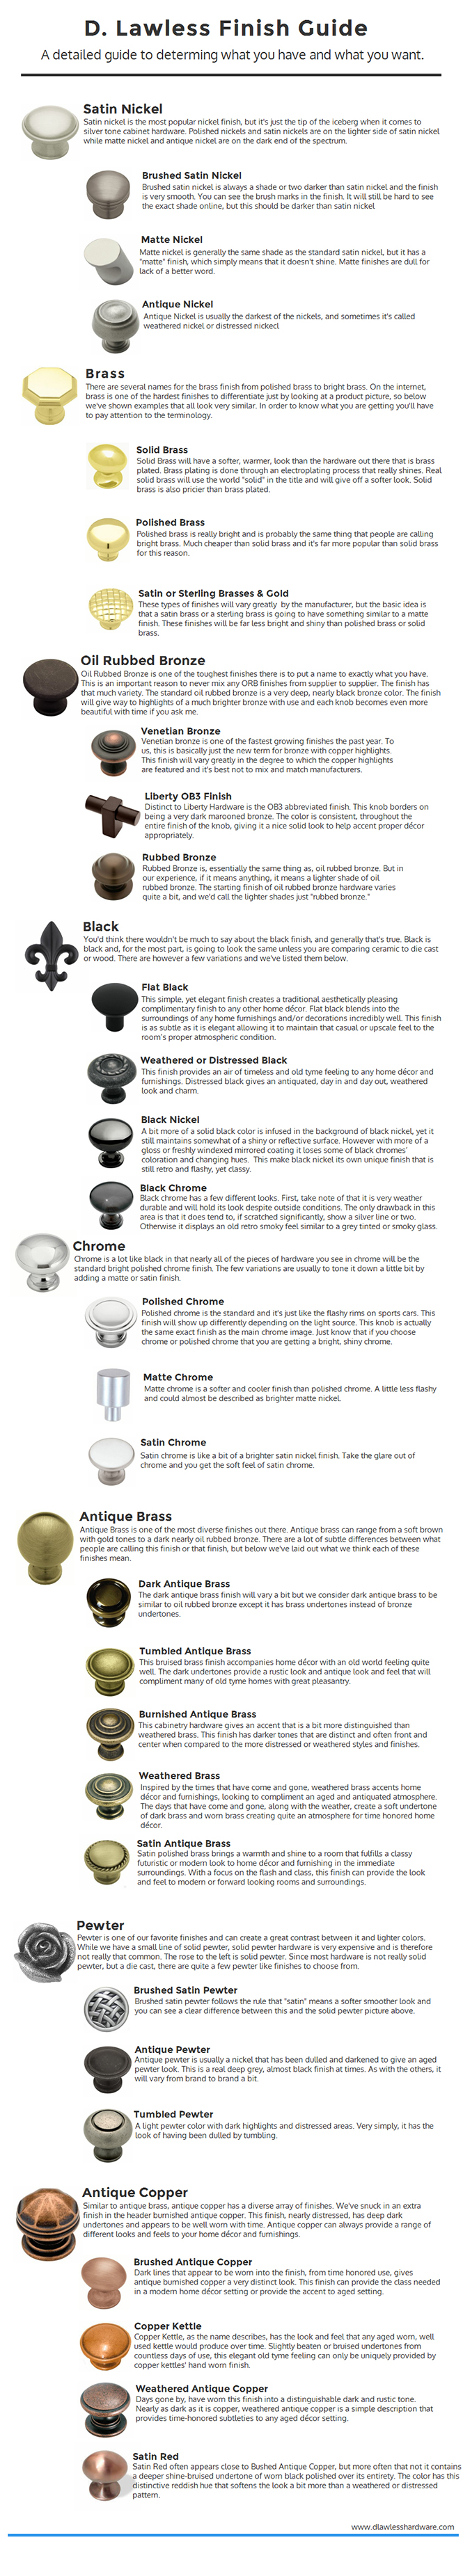 Cabinet Hardware Finishes Guide